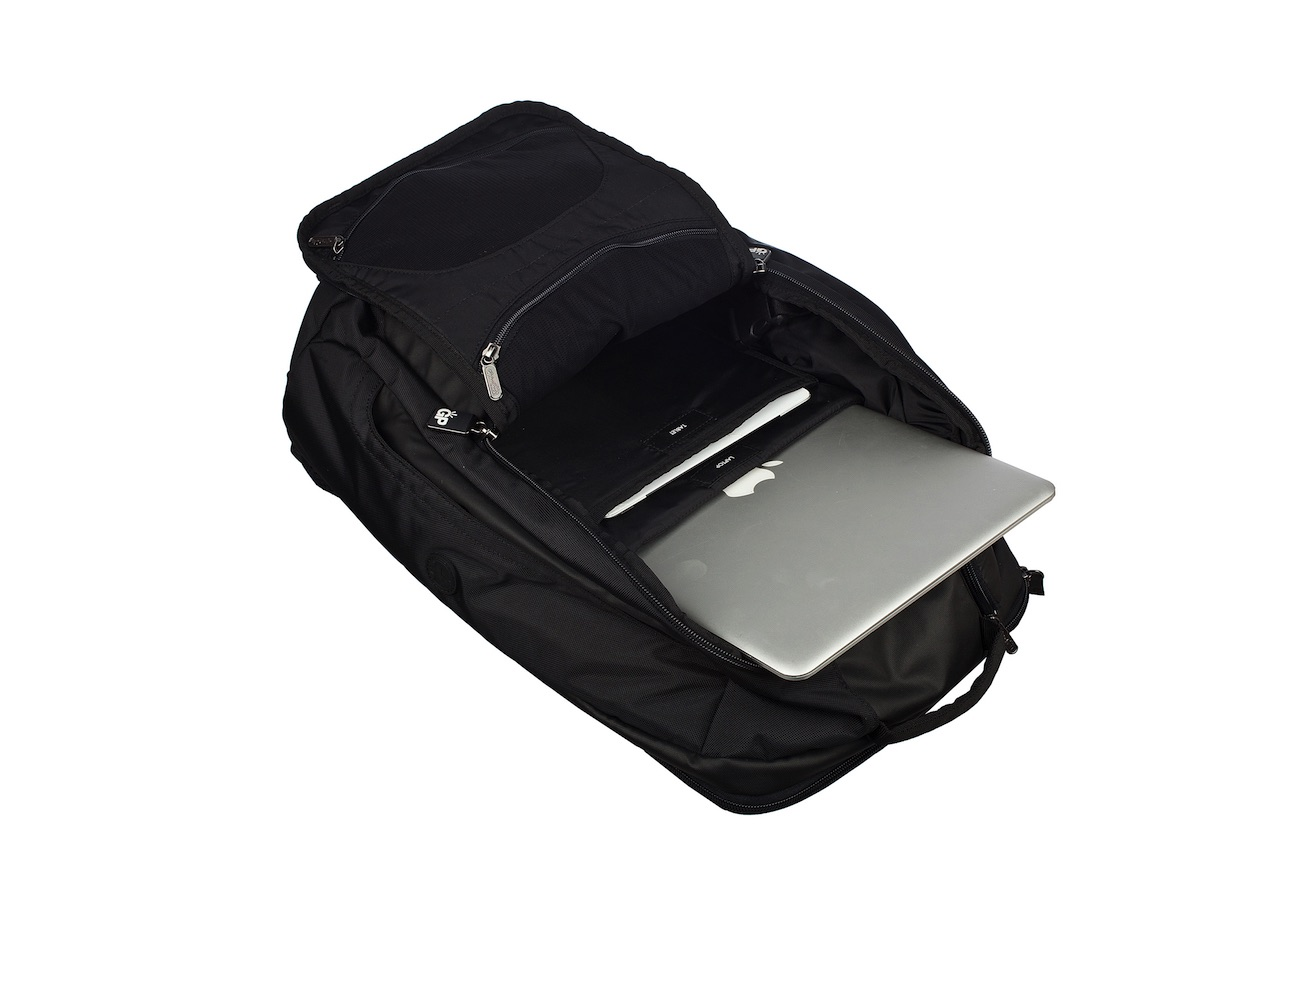 Genius Pack Travel Backpack w/ Integrated Suiter » Gadget Flow